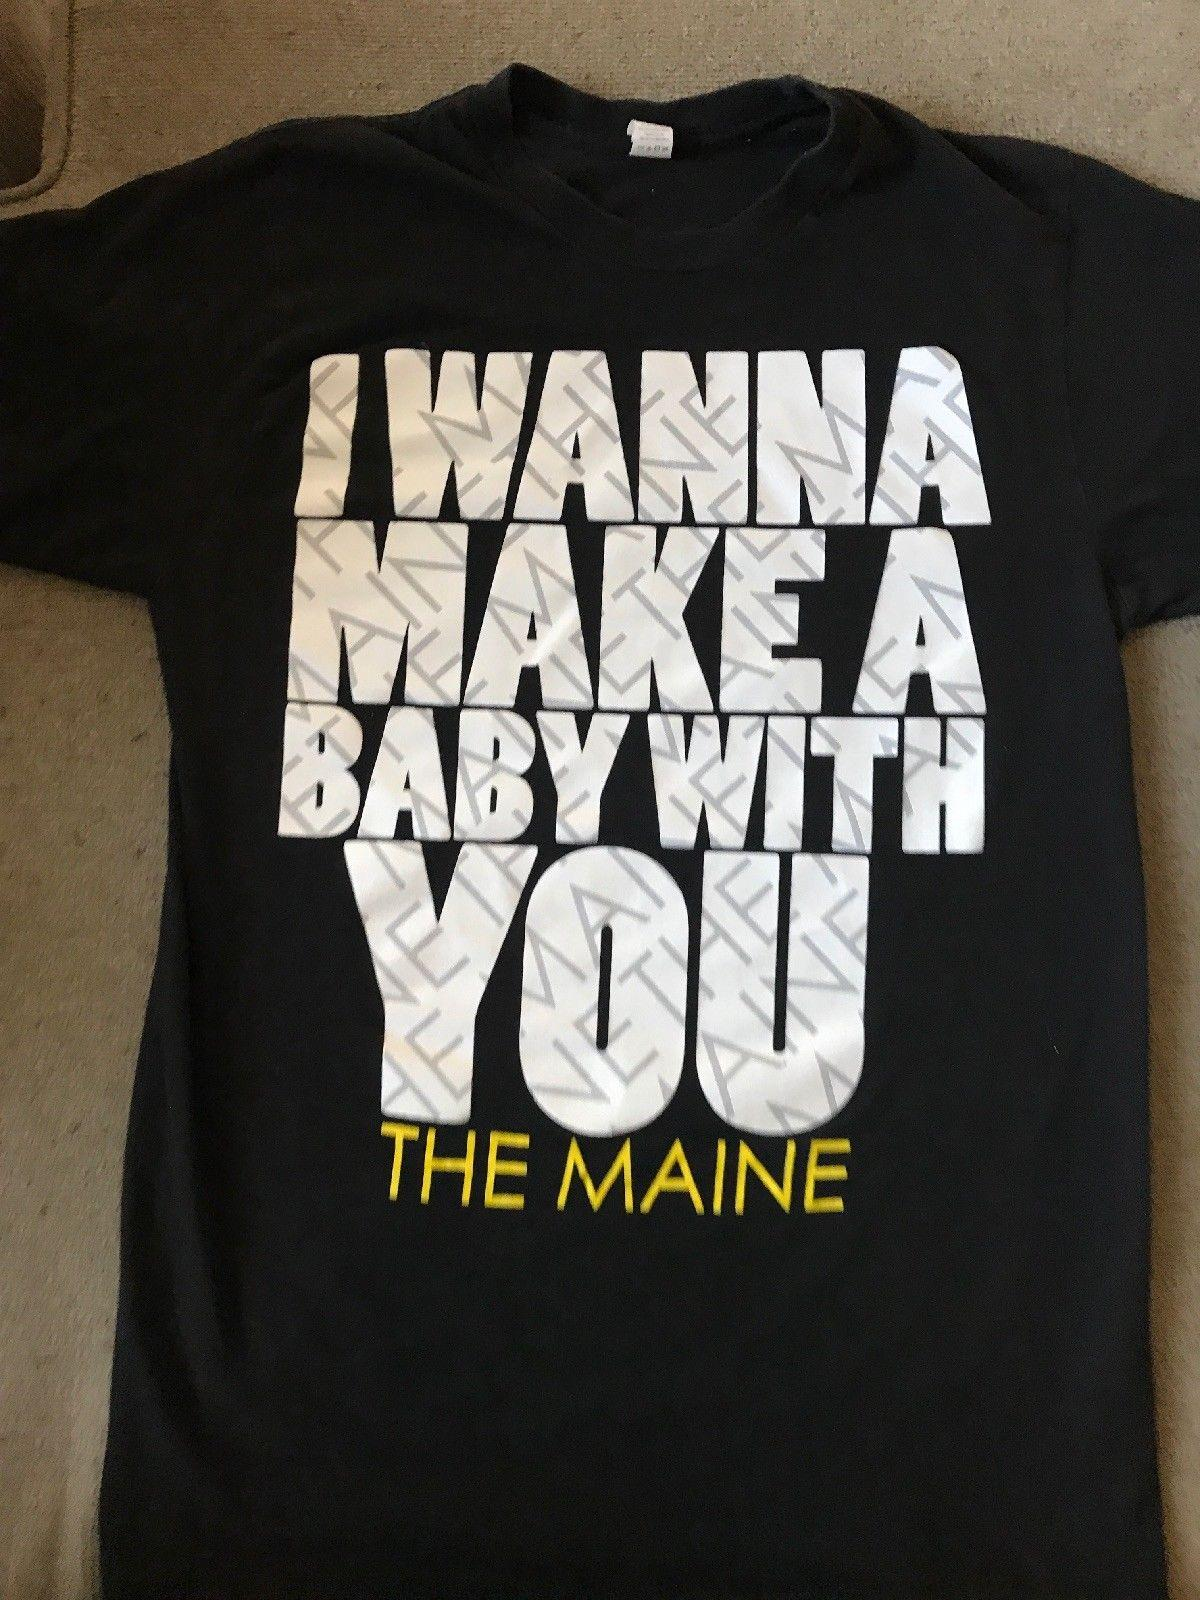 38cd2946 The Maine Band Wanna Make A Baby With You Graphic Black Concert S/S Shirt  Sz MFunny Unisex Tee Awesome Shirt Design Free T Shirts From Topclassaa, ...